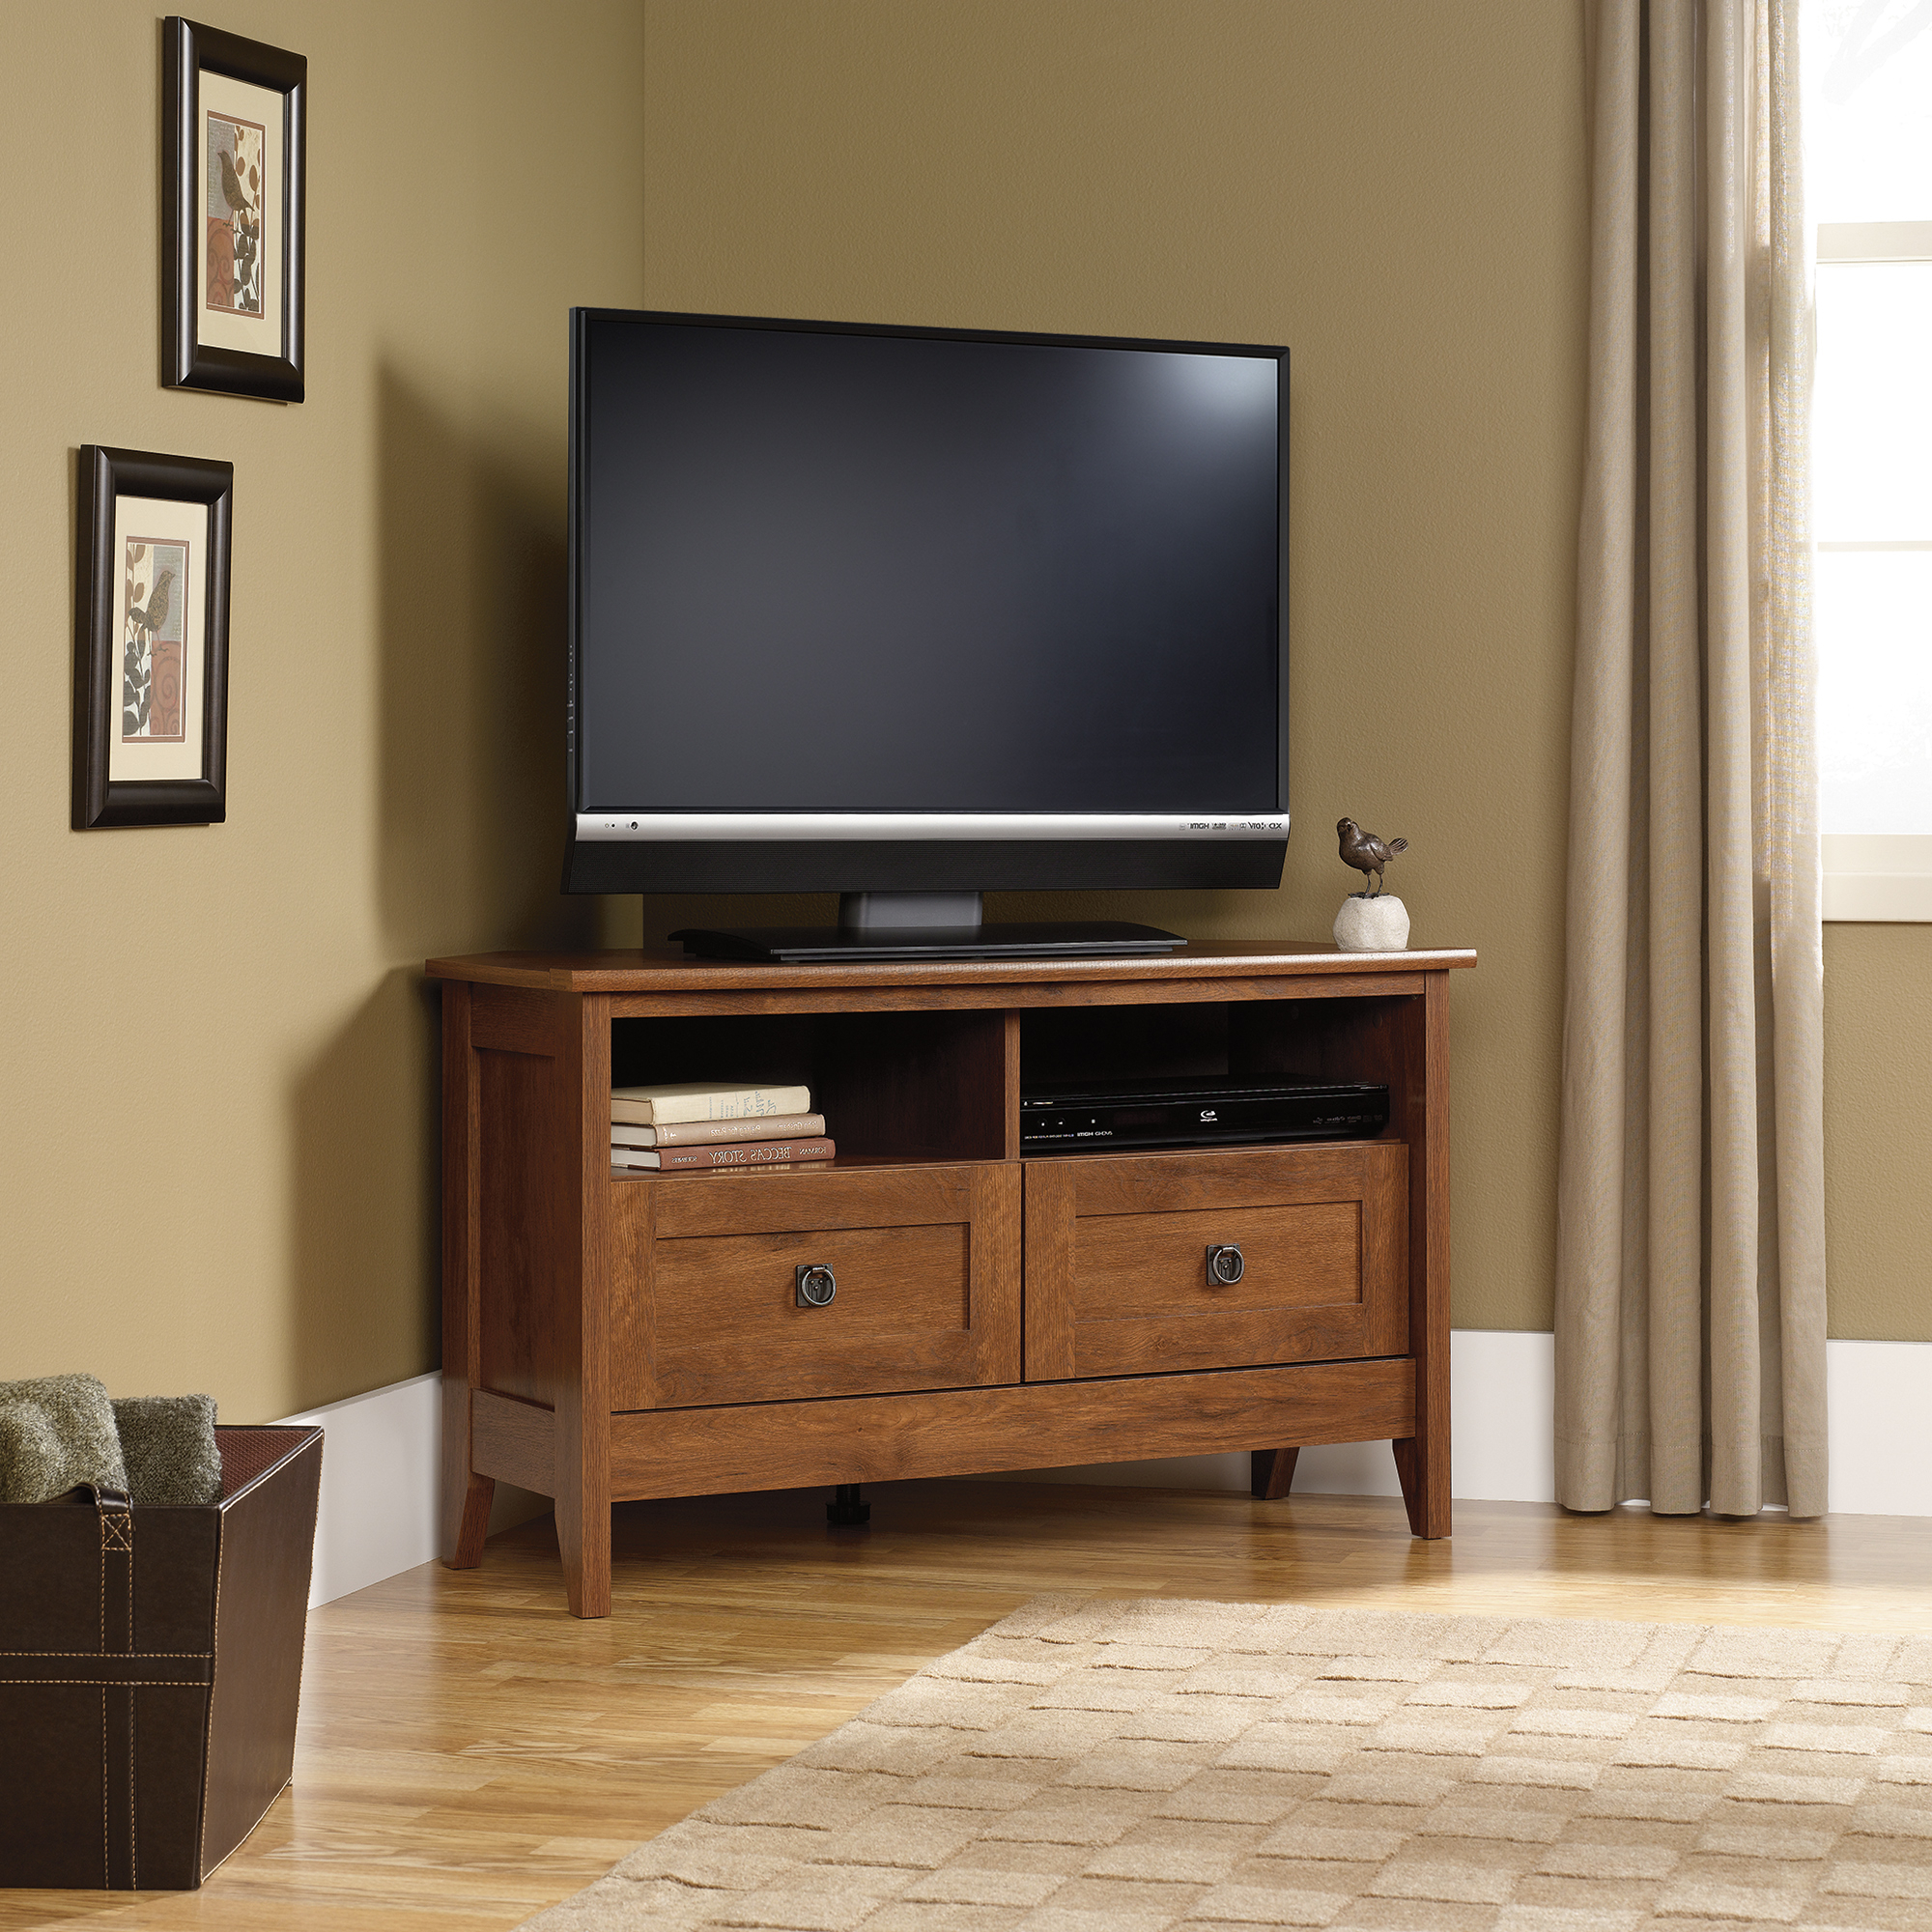 Corner Wooden Tv Stands Inside Favorite Oak Finish Corner Tv Stand (View 13 of 20)